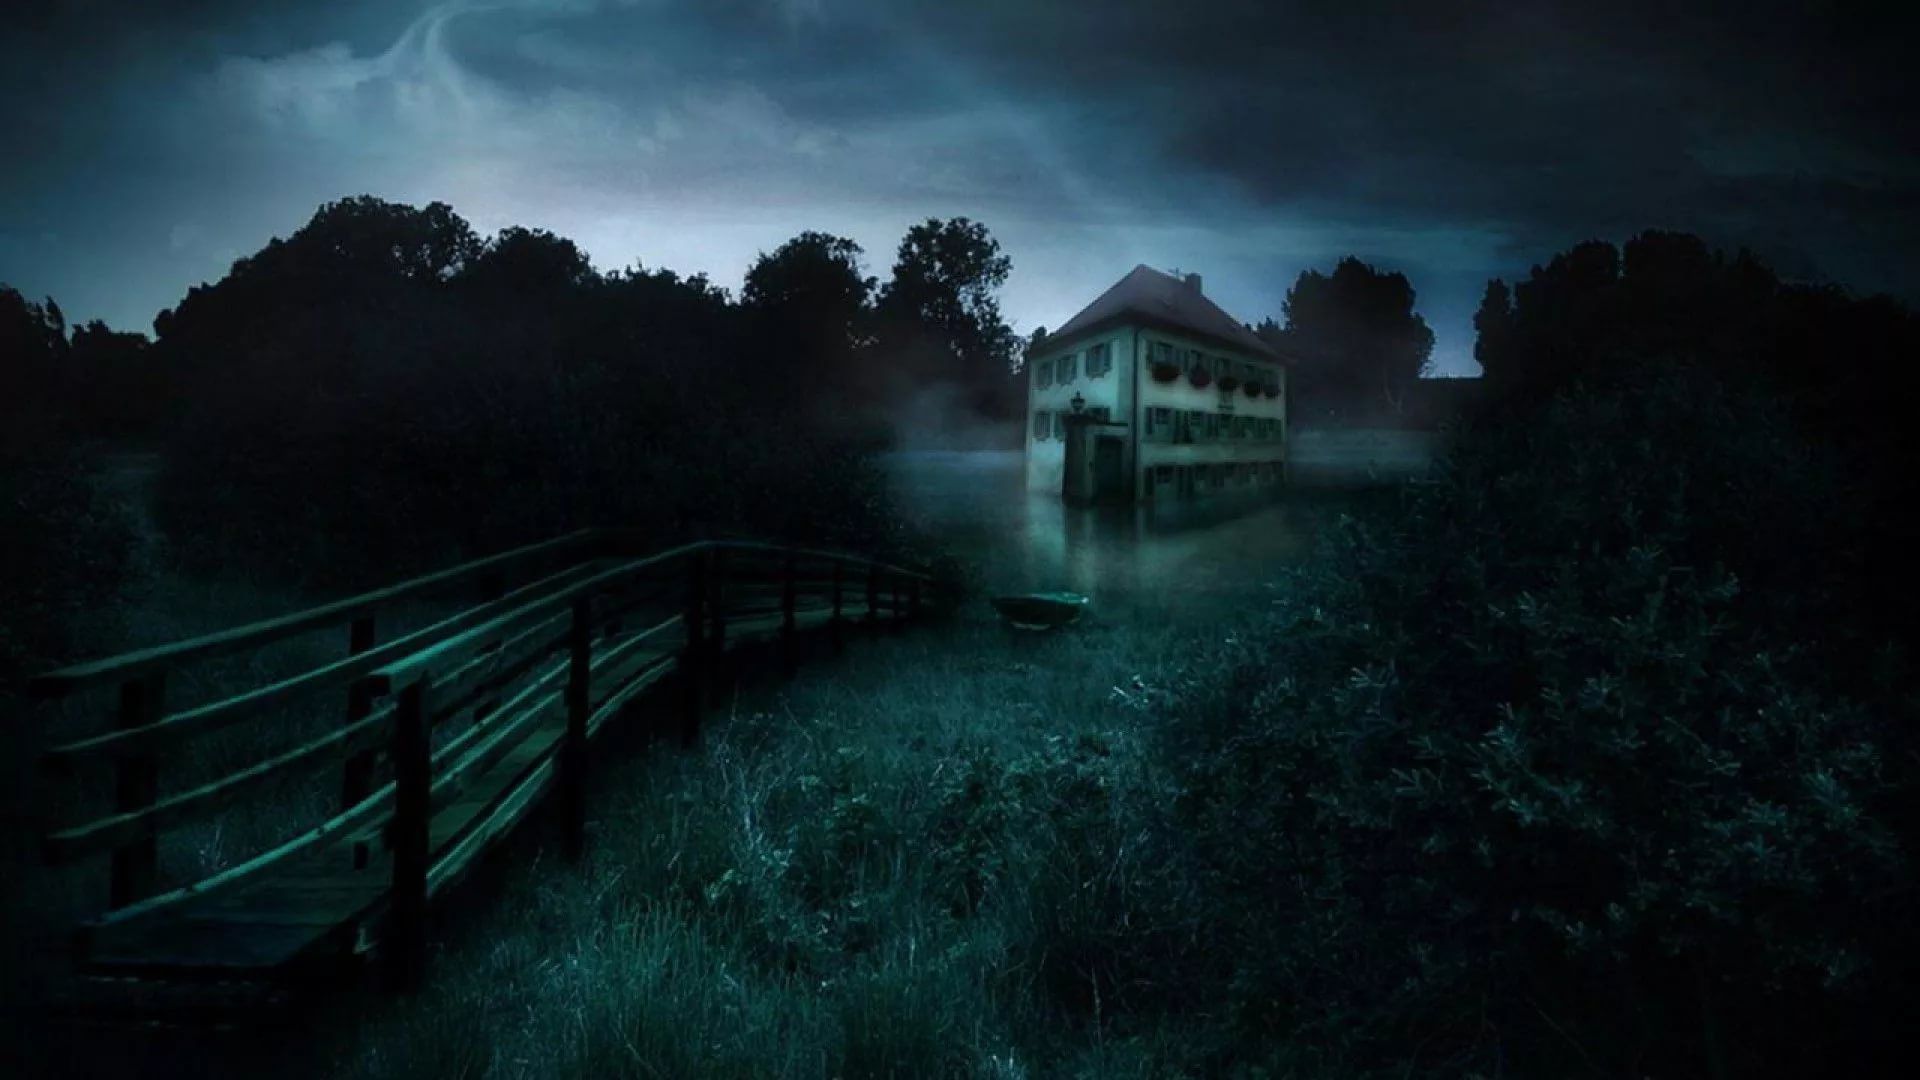 Horror wallpaper and themes